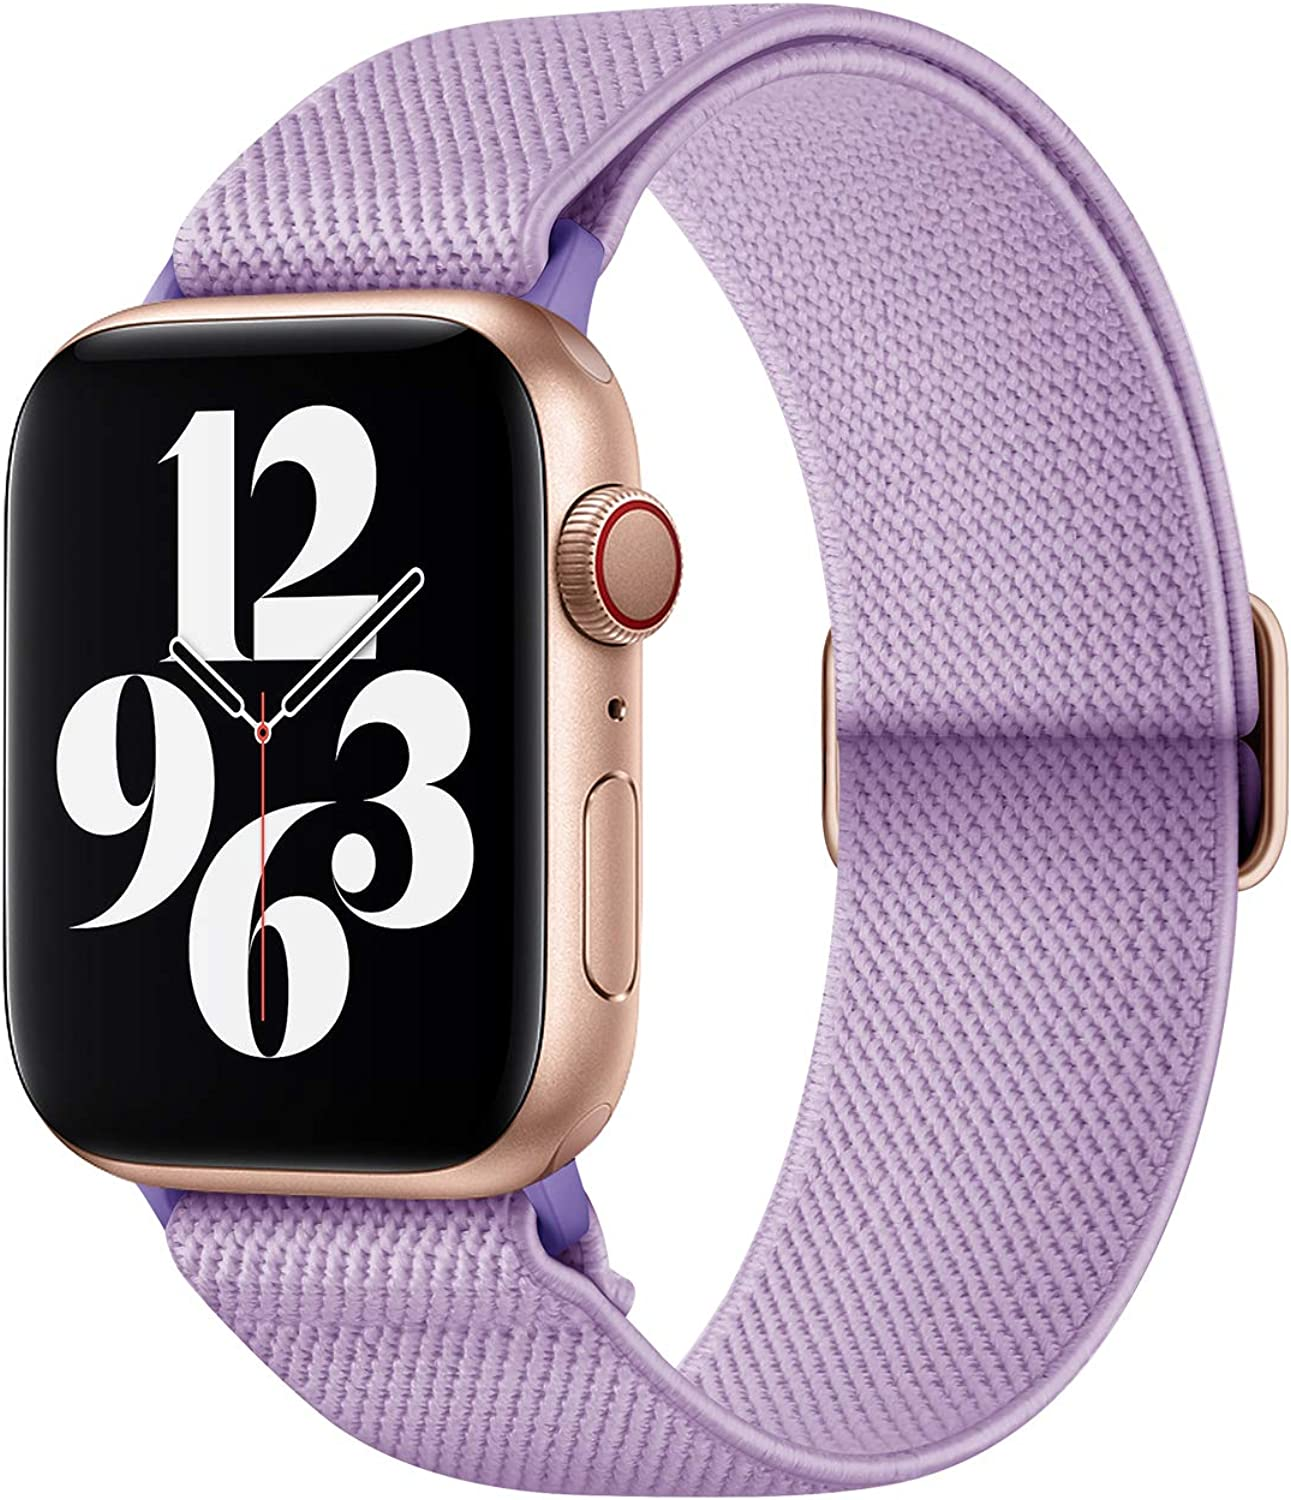 AMANECER Stretchy Nylon Watch Bands Compatible with Apple Watch Series 6/5/4/3/2/1 SE, Adjustable Braided Sport Elastic Solo Loop Bands for iWatch